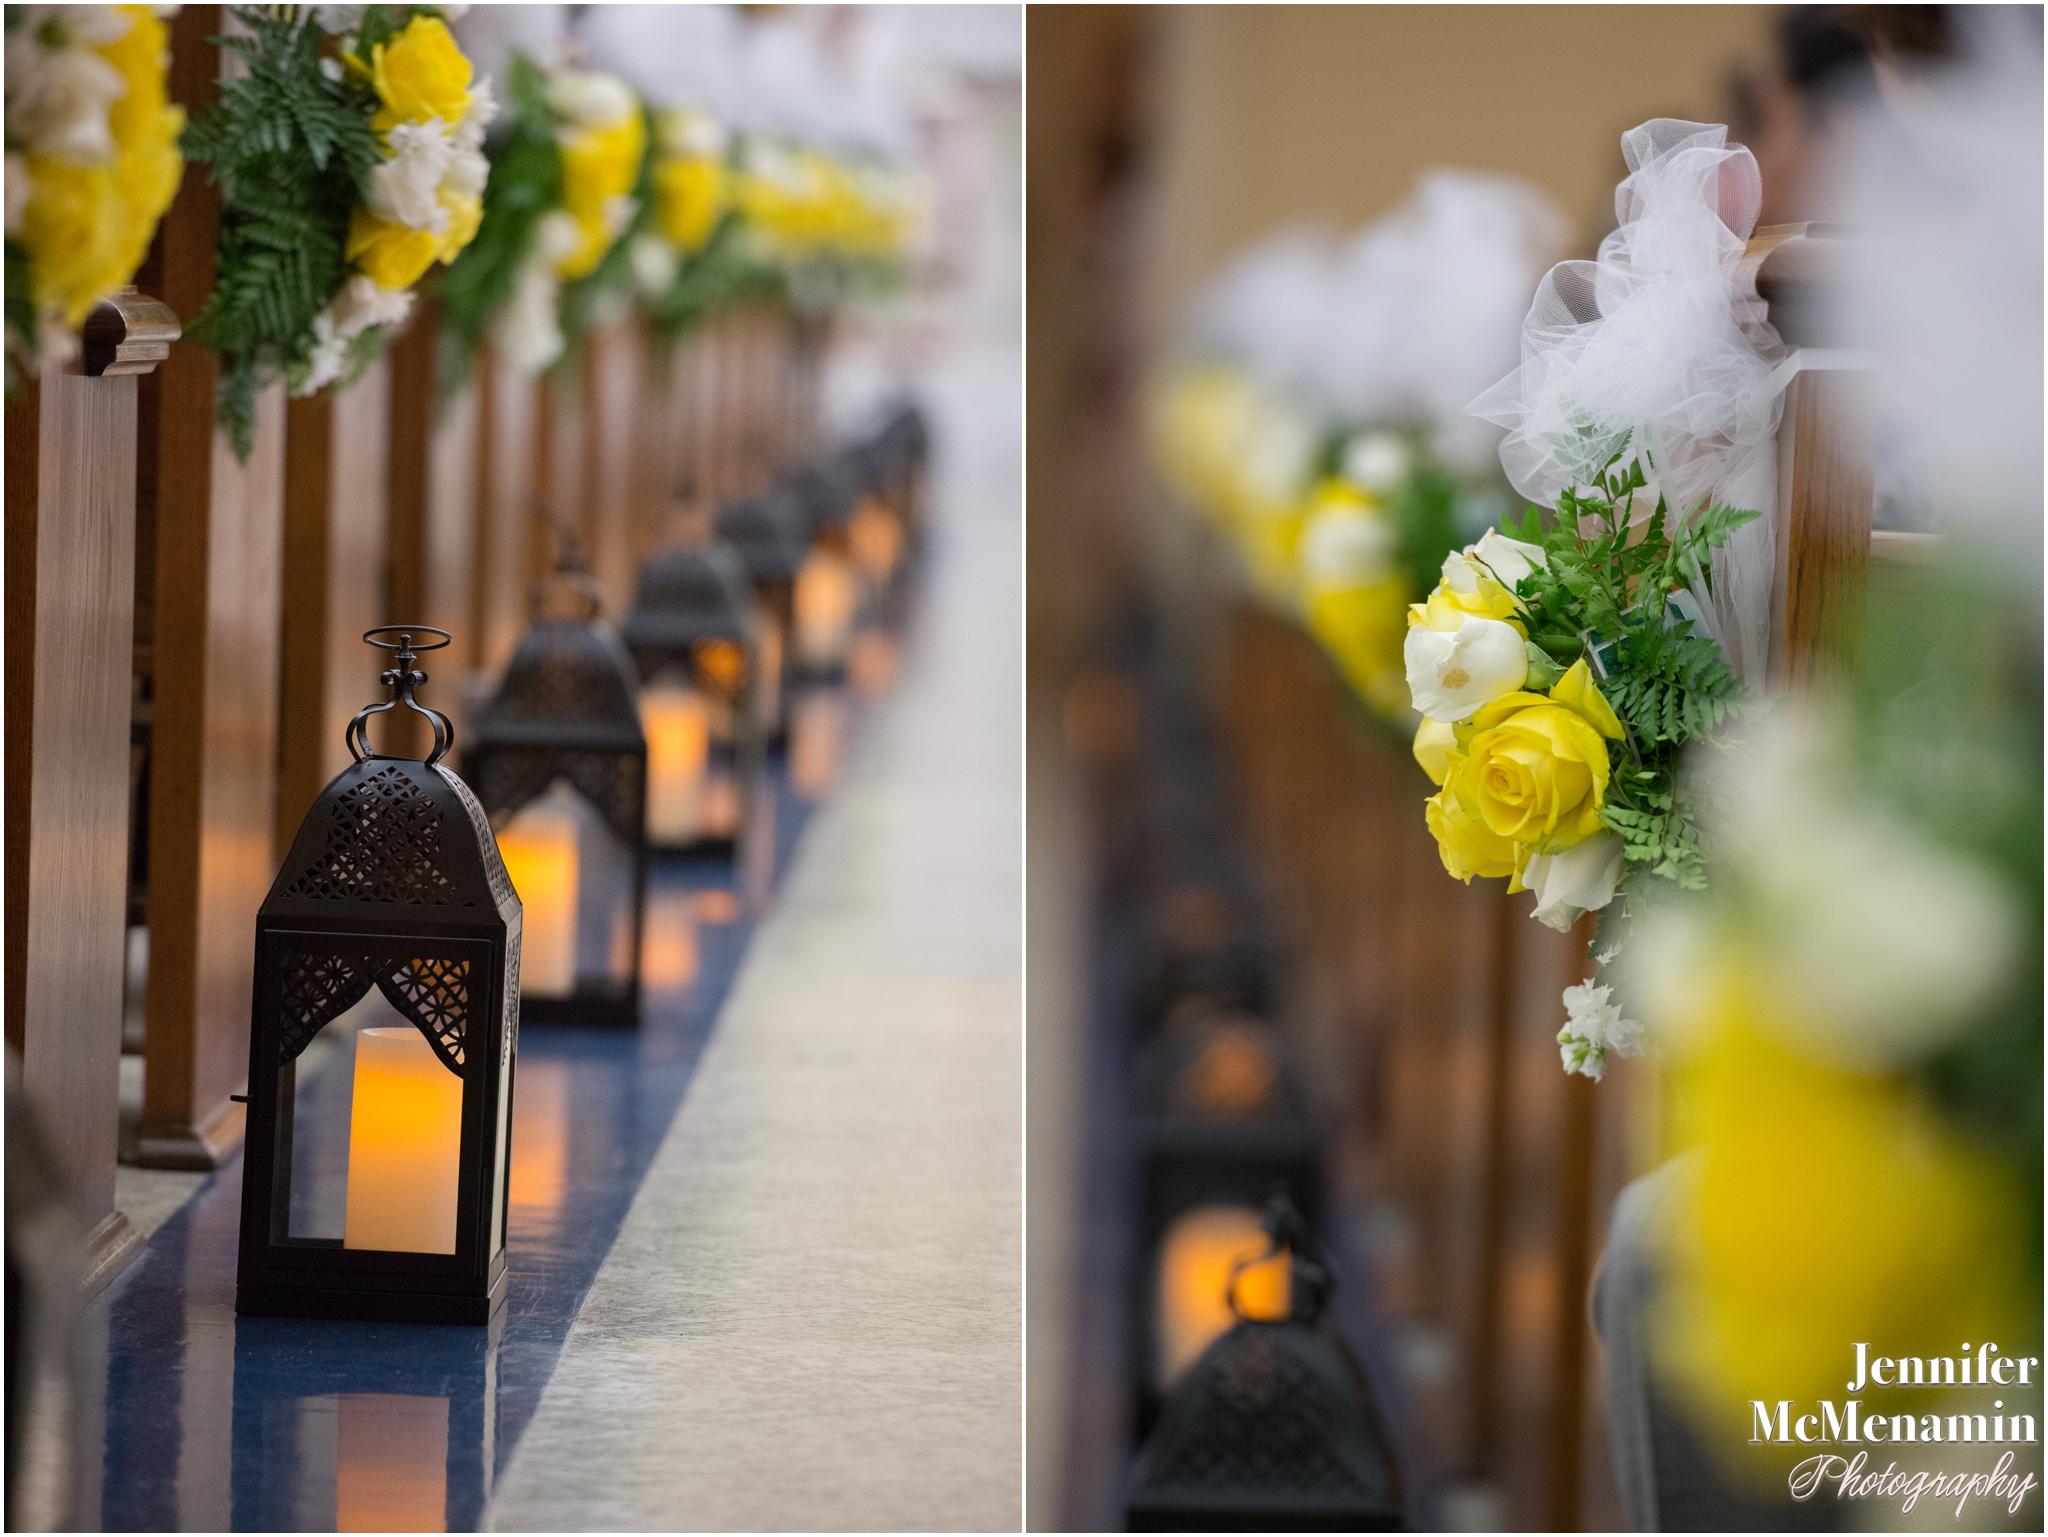 023_SchneiderMagallanes_00782-0156_JenniferMcMenaminPhotography_Baltimore-wedding-photography_St-Mary-of-the-Mills-Church_The-Other-Barn_Maryland-wedding-photography